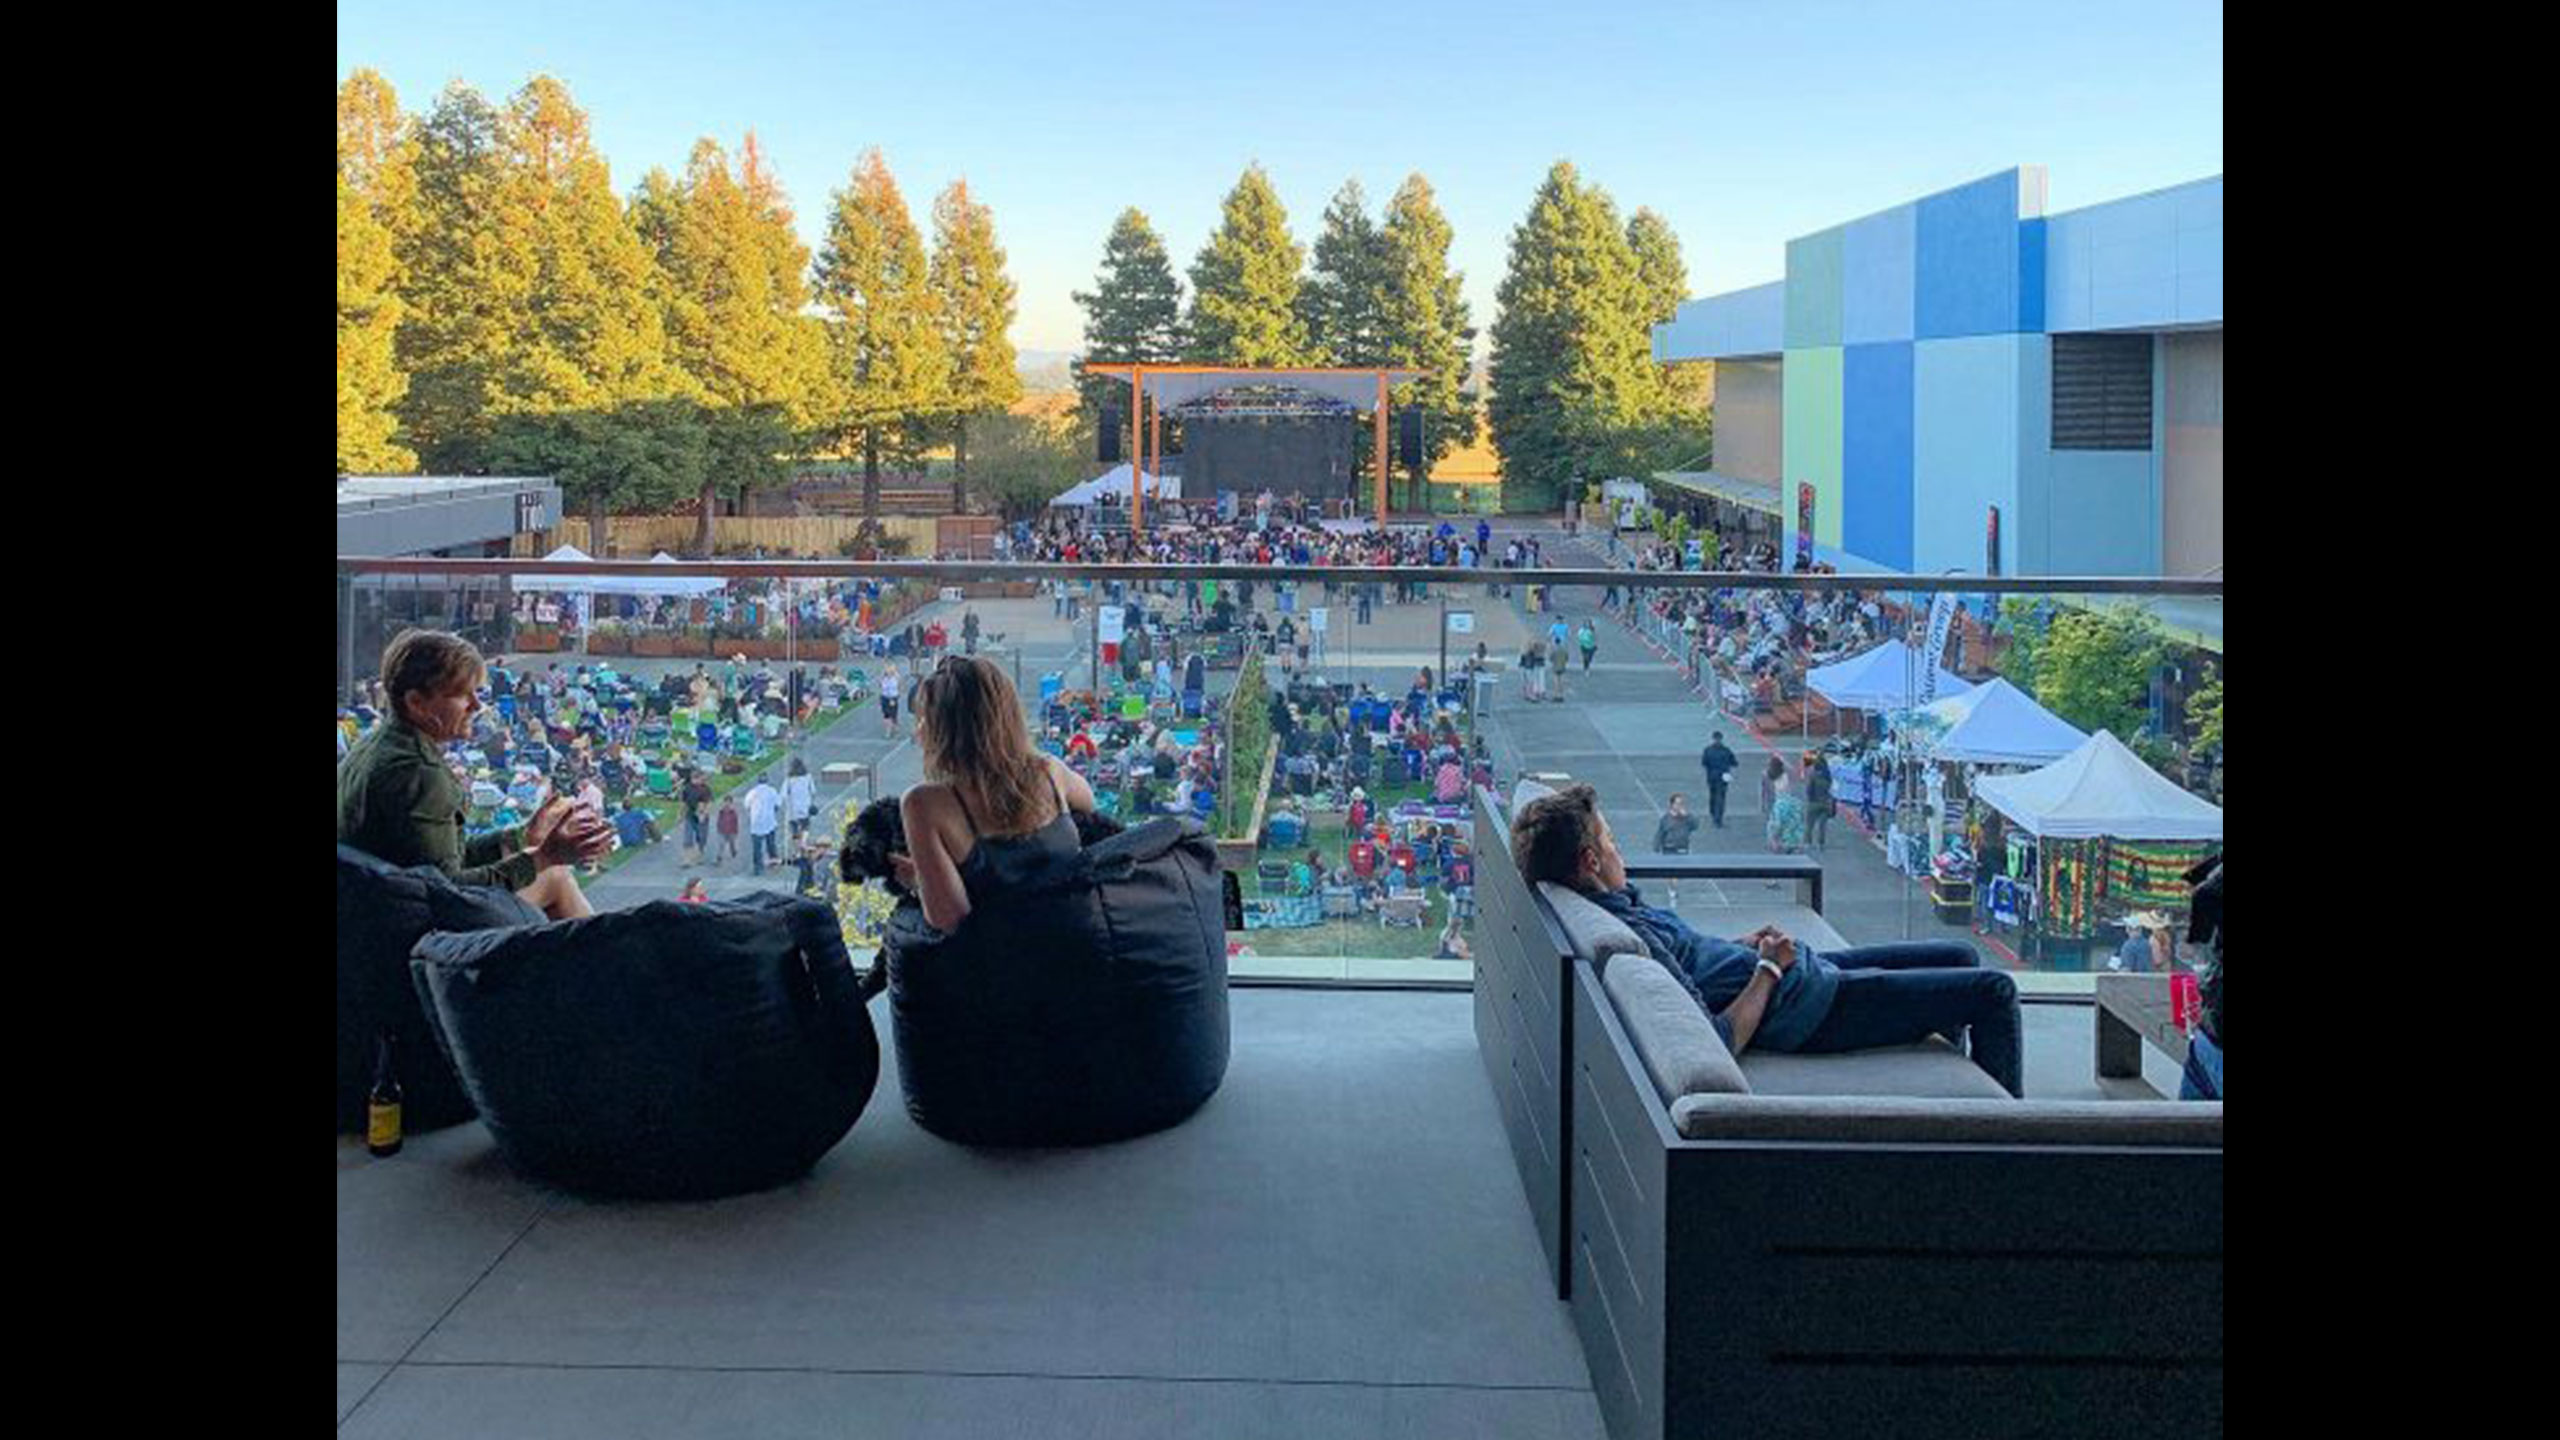 Deck-Design-Rohnert-Park-SOMO-Lounge-2-View-from-the-deck-to-the-stage-and-blue-facade